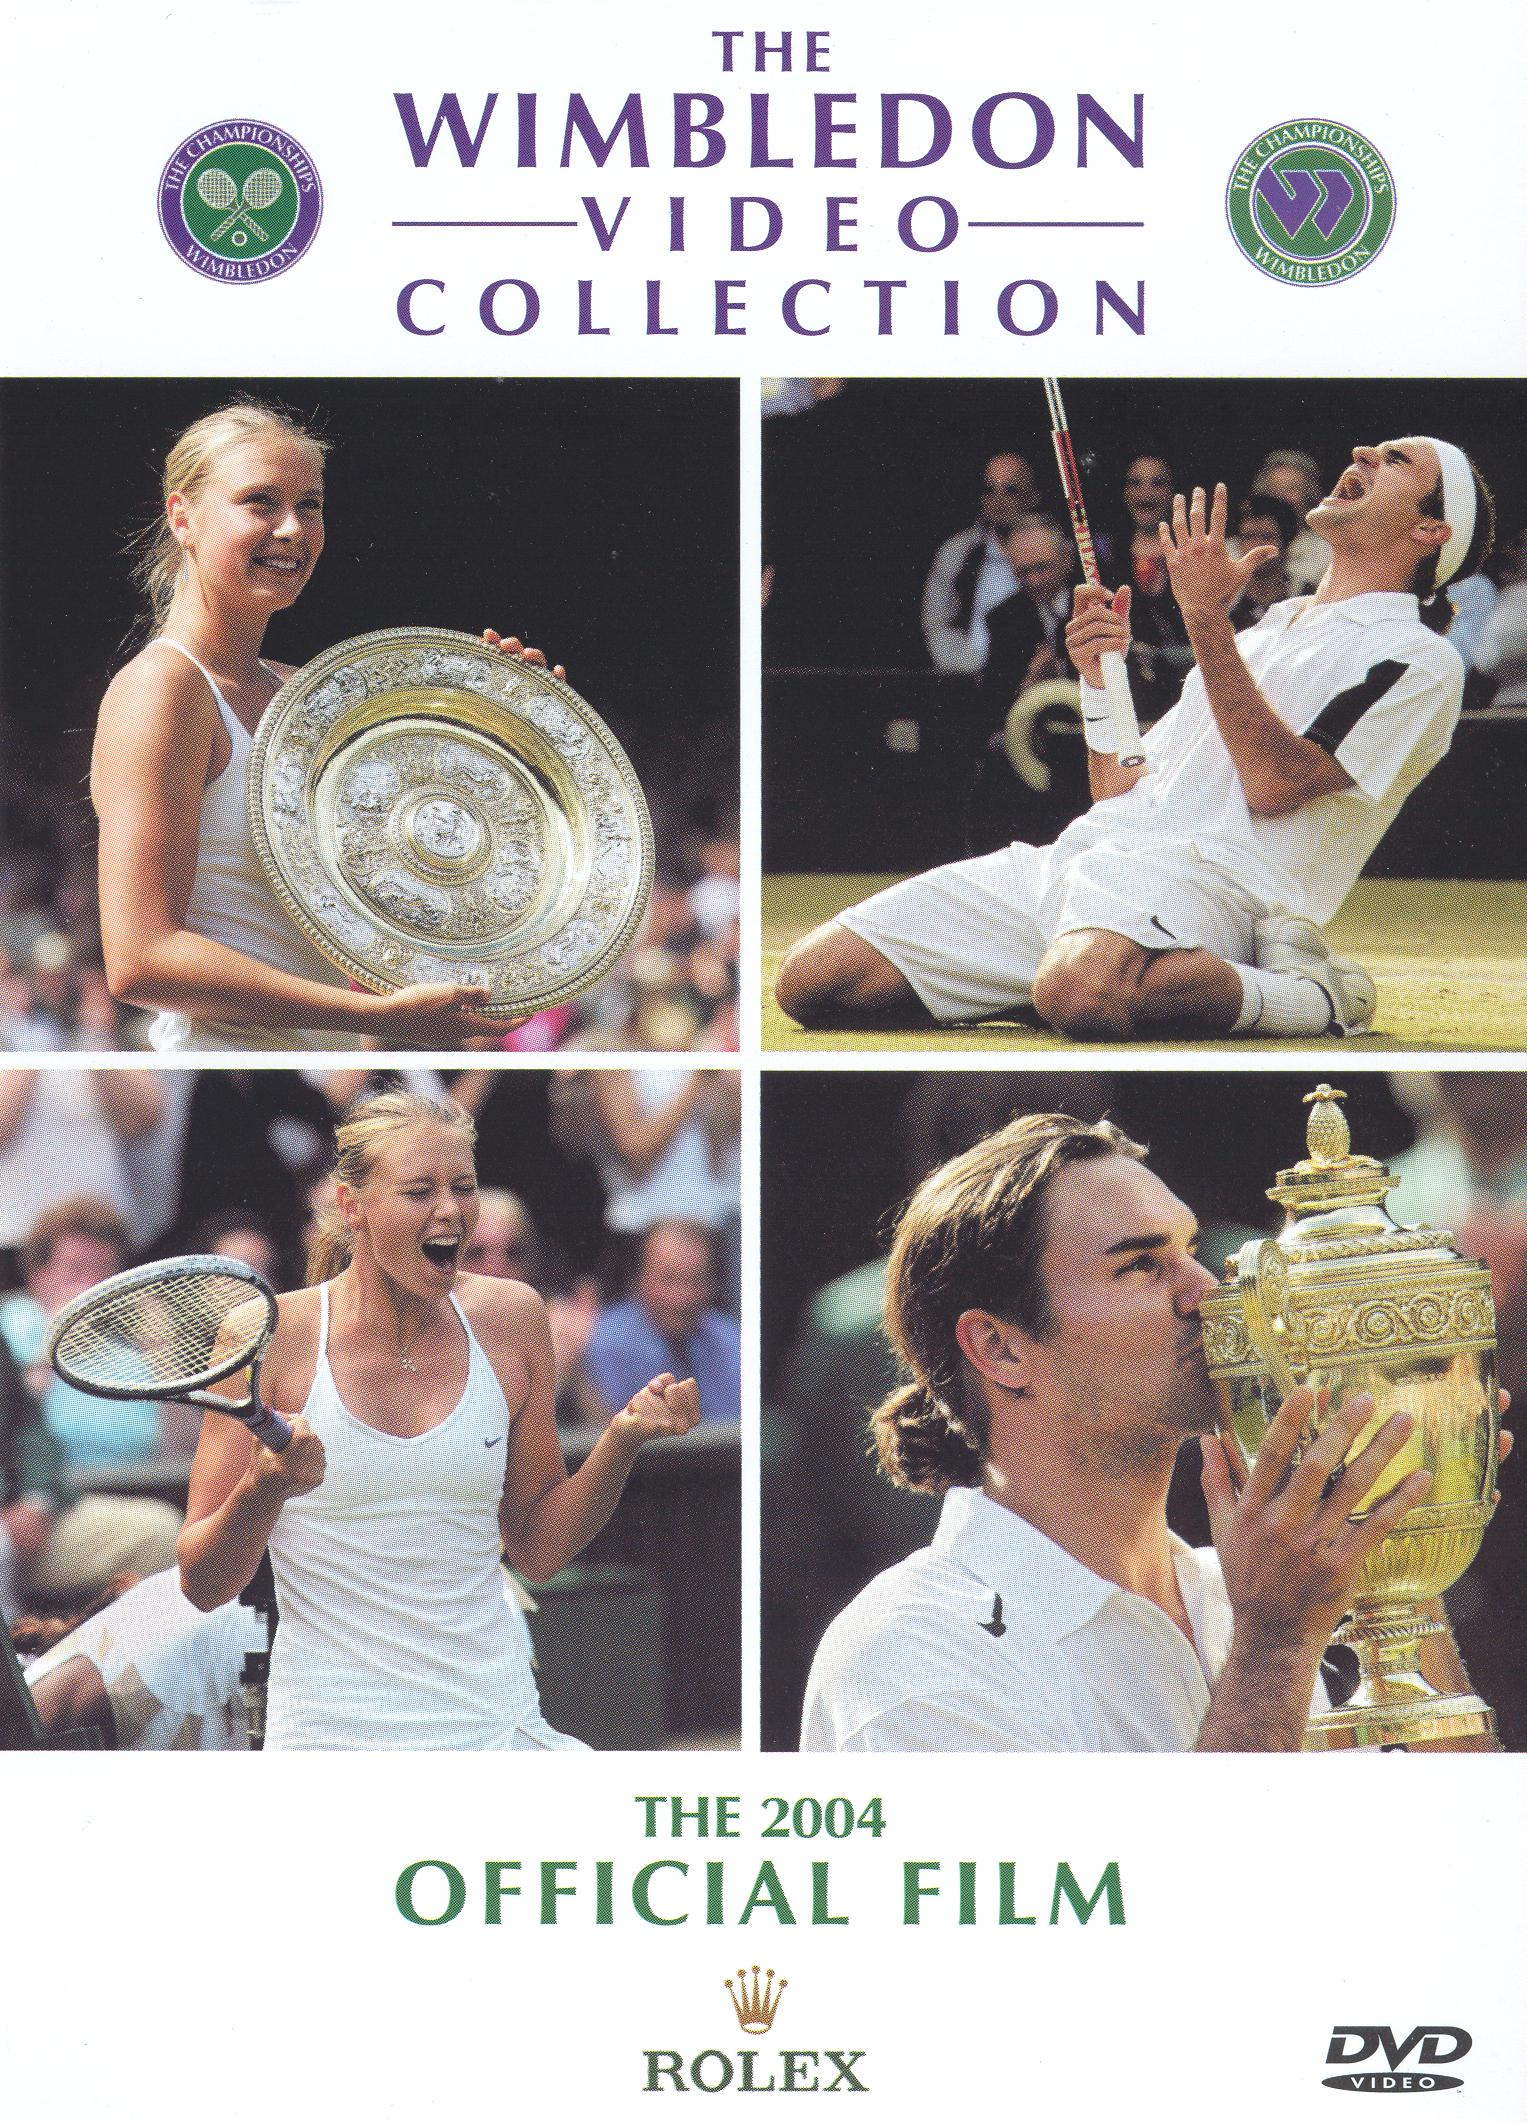 The Wimbledon Video Collection: The 2004 Official Film